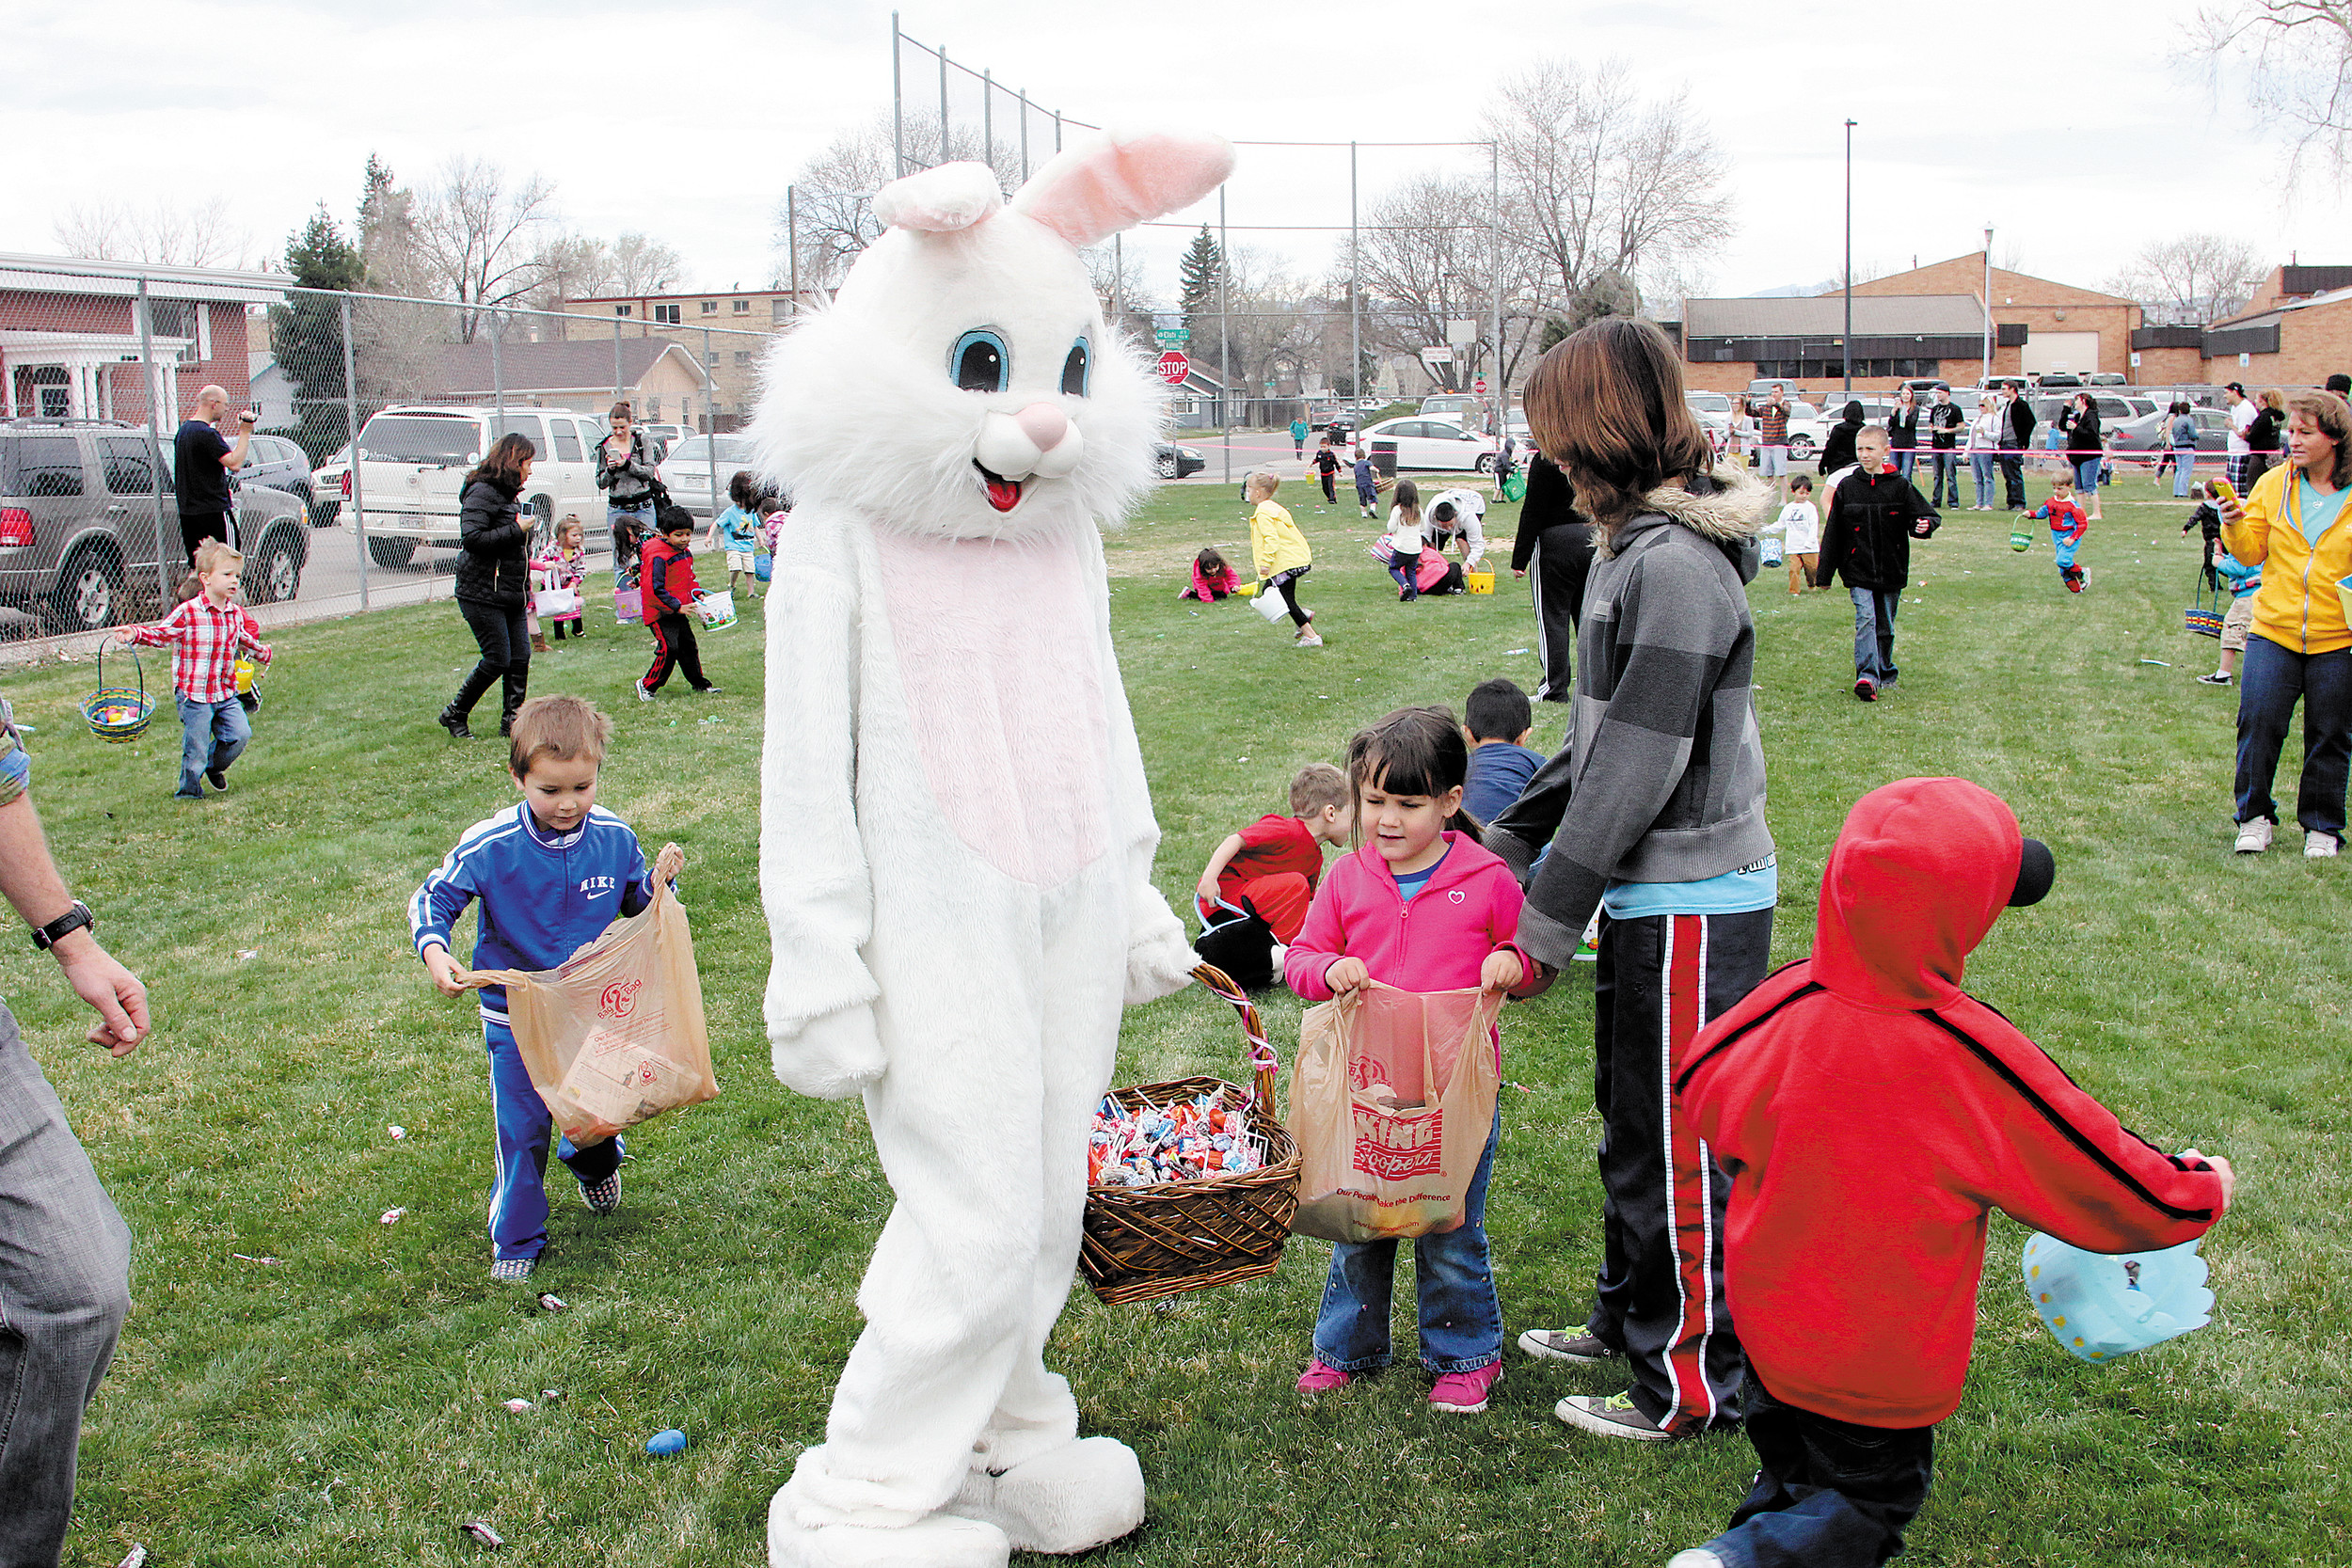 The tall white bunny with the basket of candy was popular with children at the Englewood Great Egg Scramble. The bunny handed out hugs and candy at the April12 event. Photo by Tom Munds